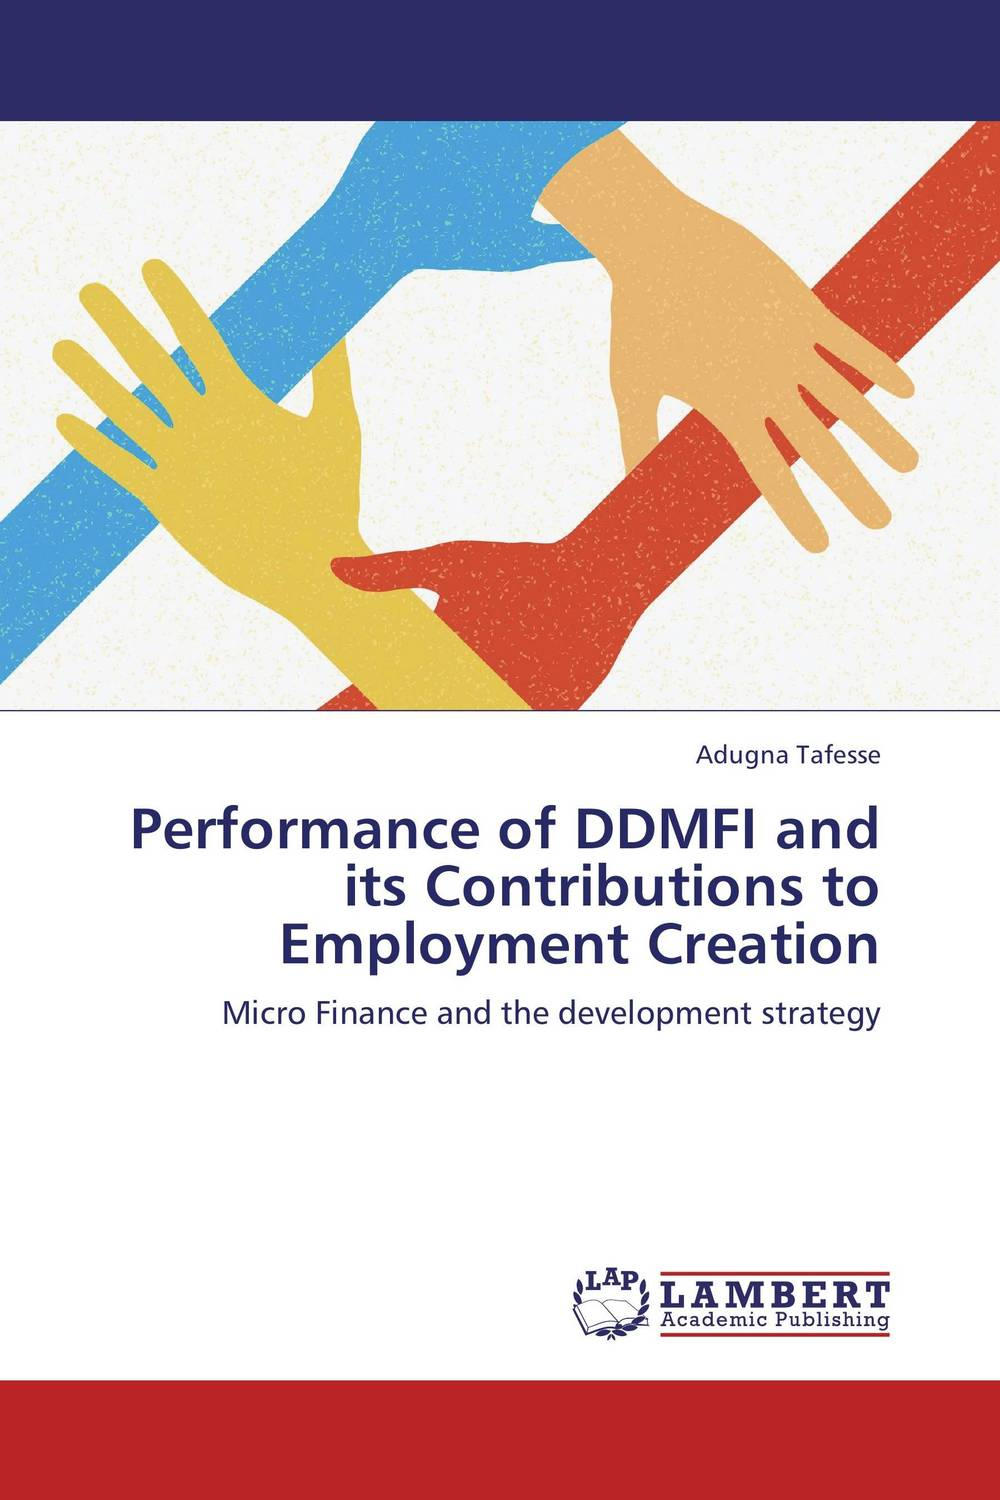 Performance of DDMFI and its Contributions to Employment Creation david parmenter key performance indicators developing implementing and using winning kpis